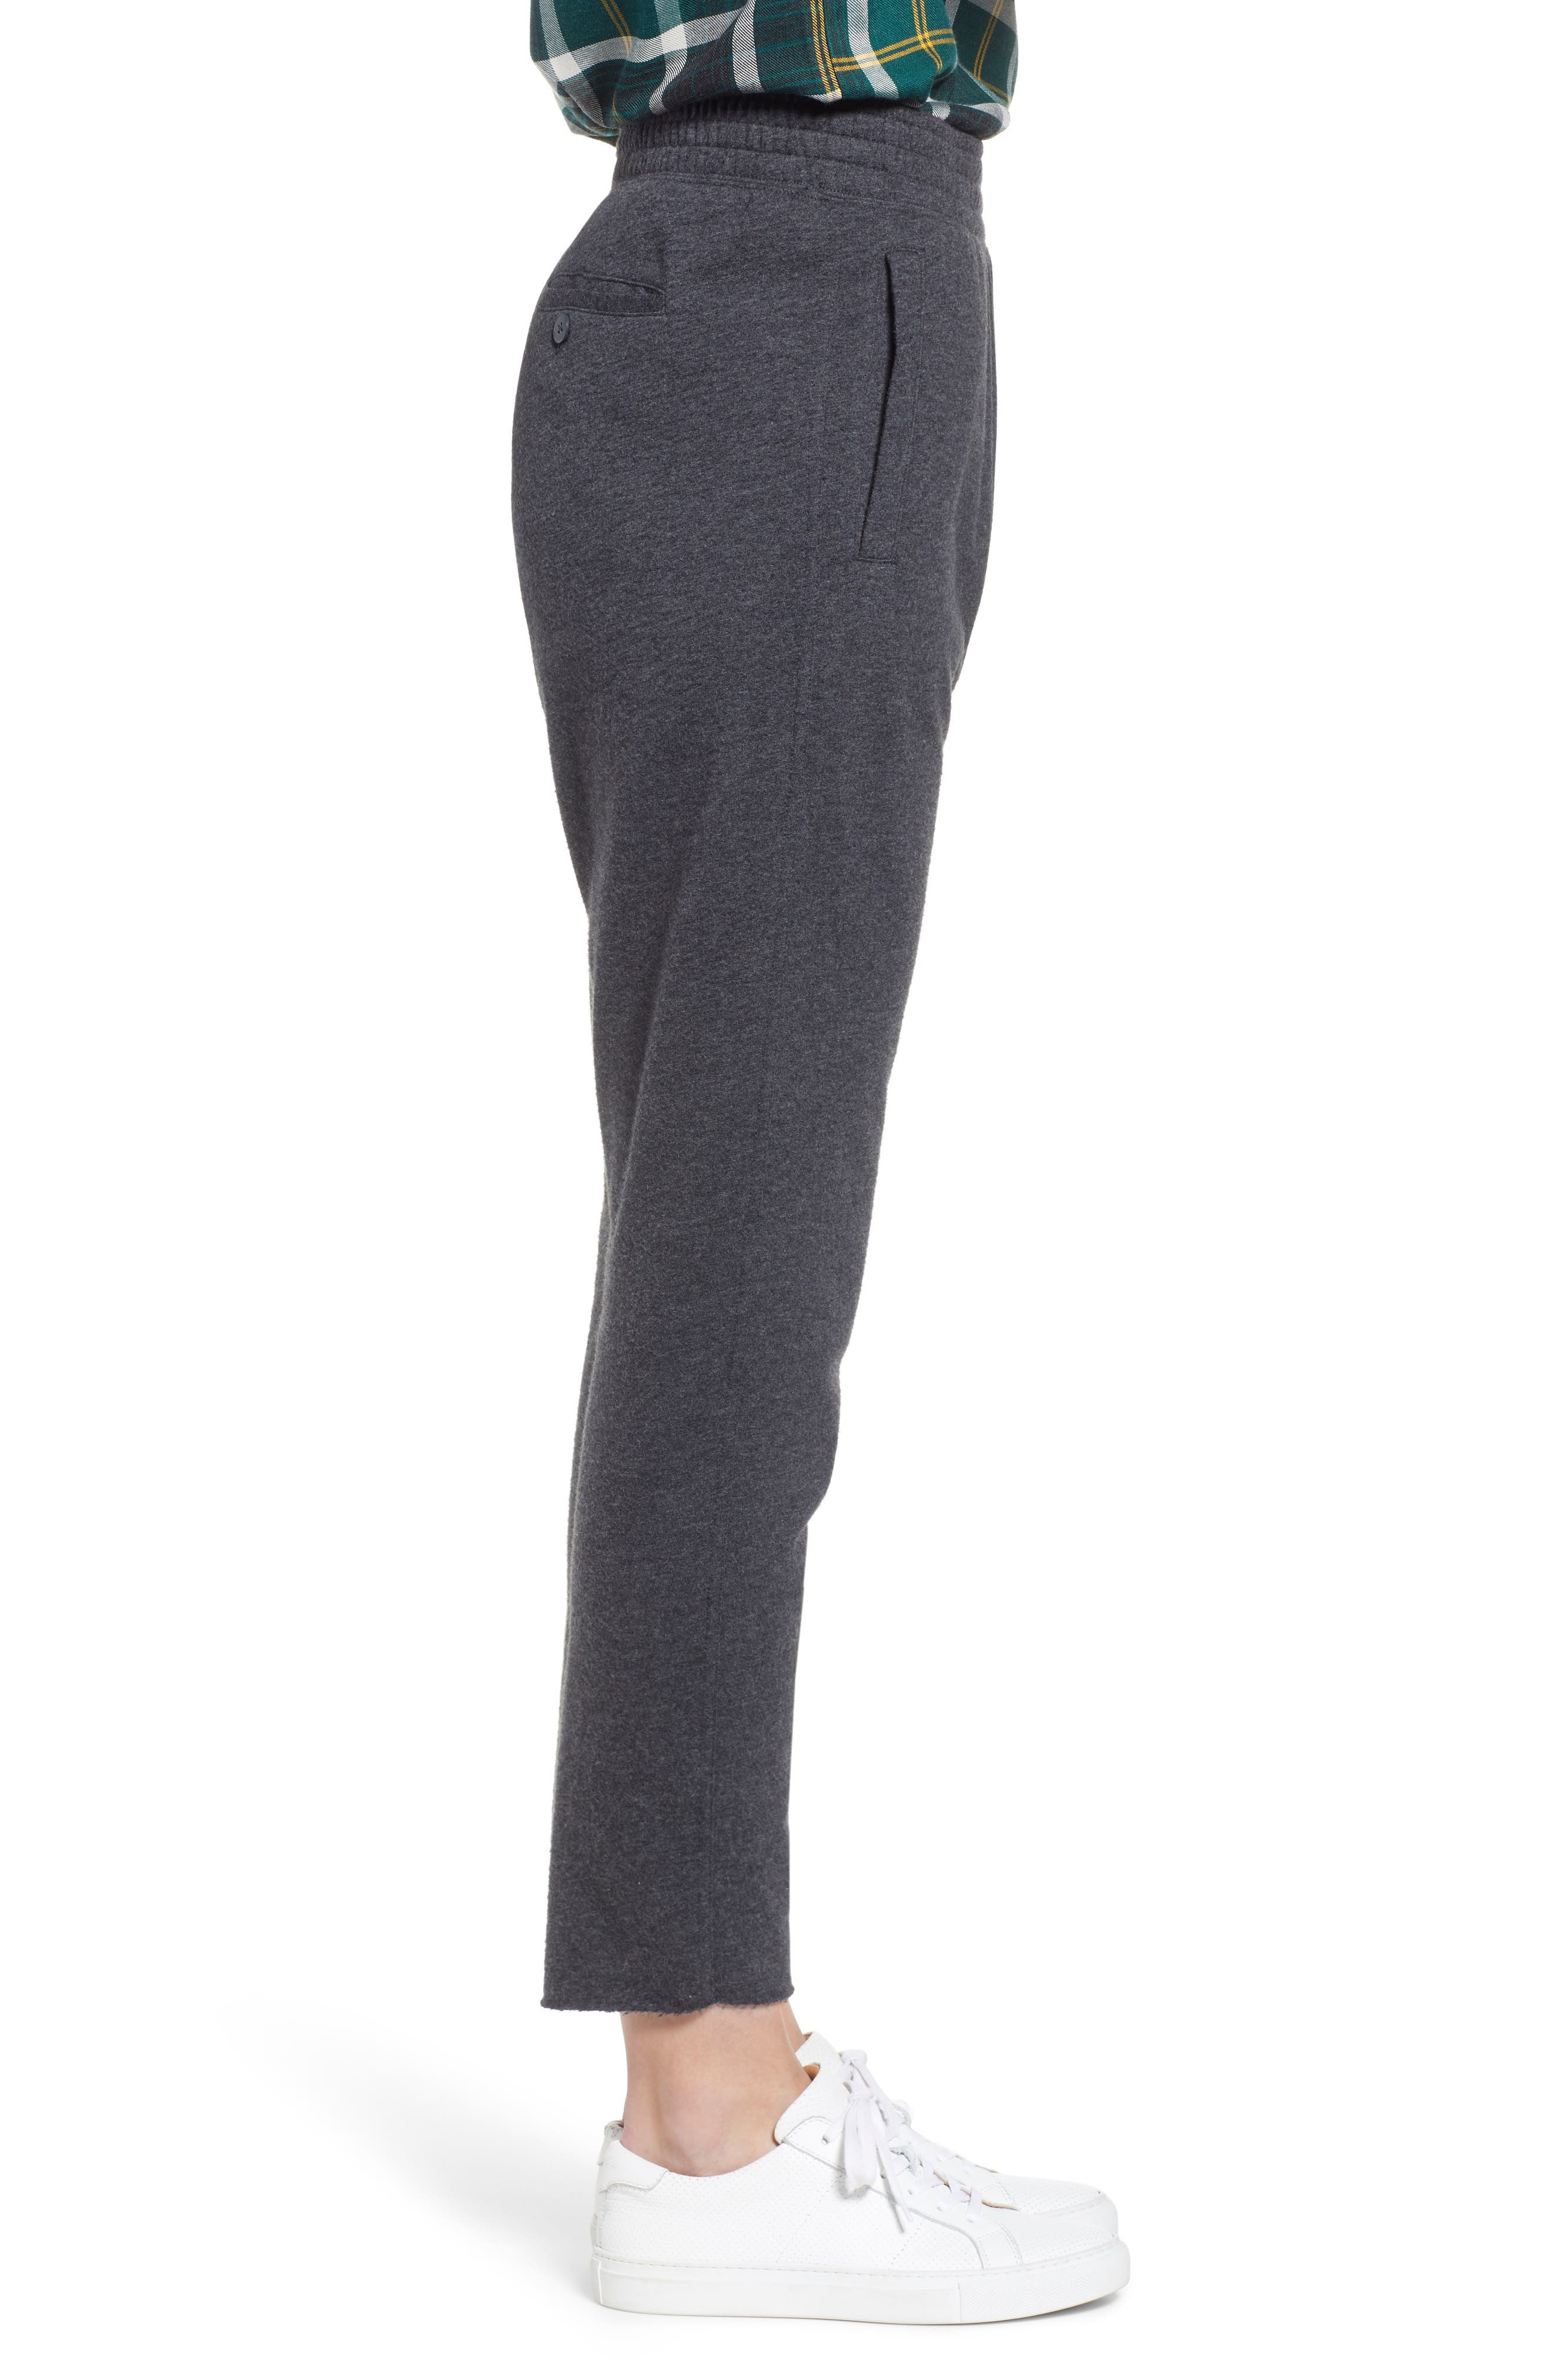 Jogger Pants,                             Alternate thumbnail 3, color,                             GREY DARK CHARCOAL HEATHER